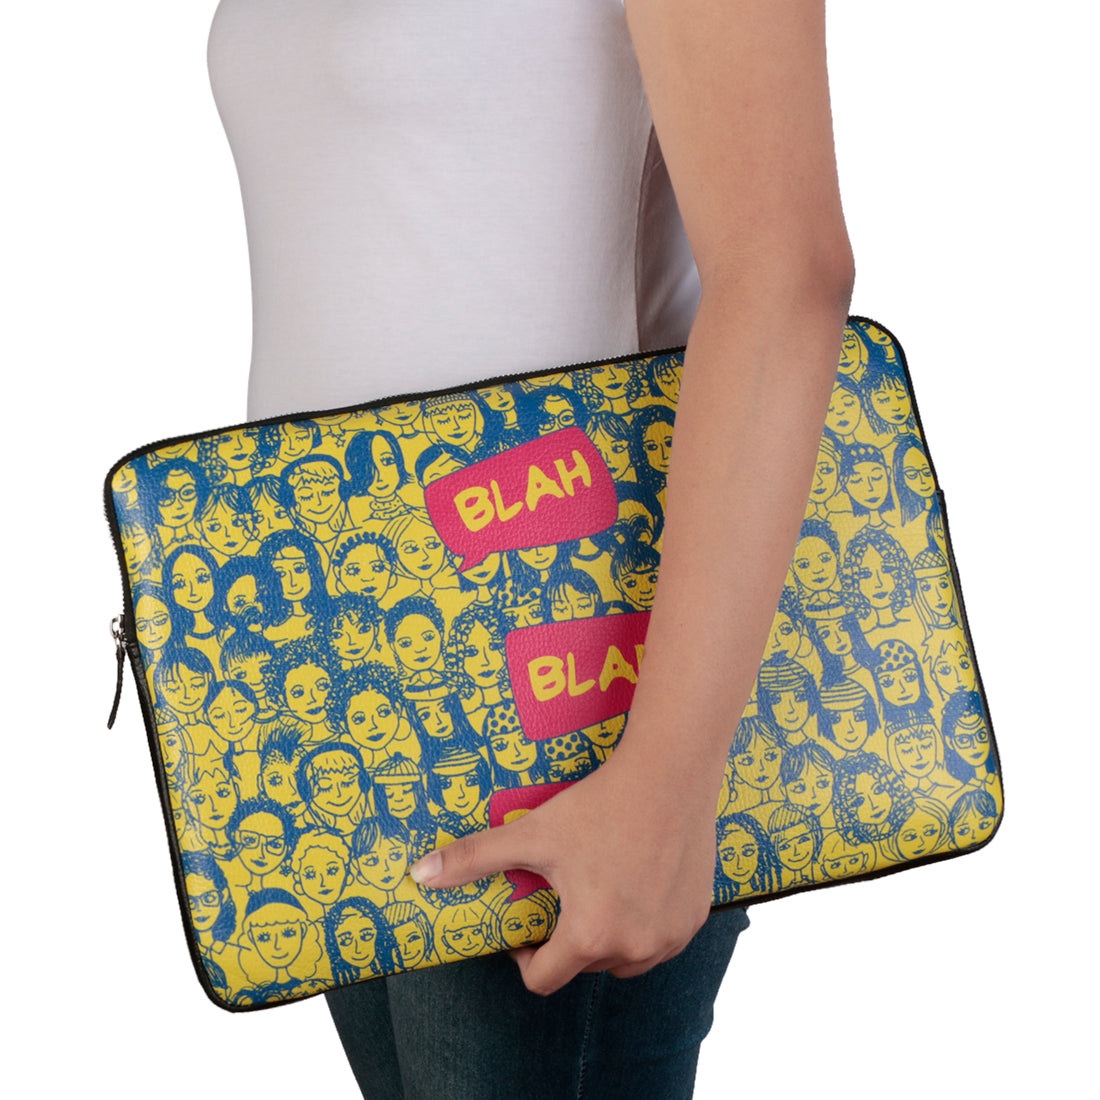 "Blah Blah Blue 15"" Laptop Sleeve"